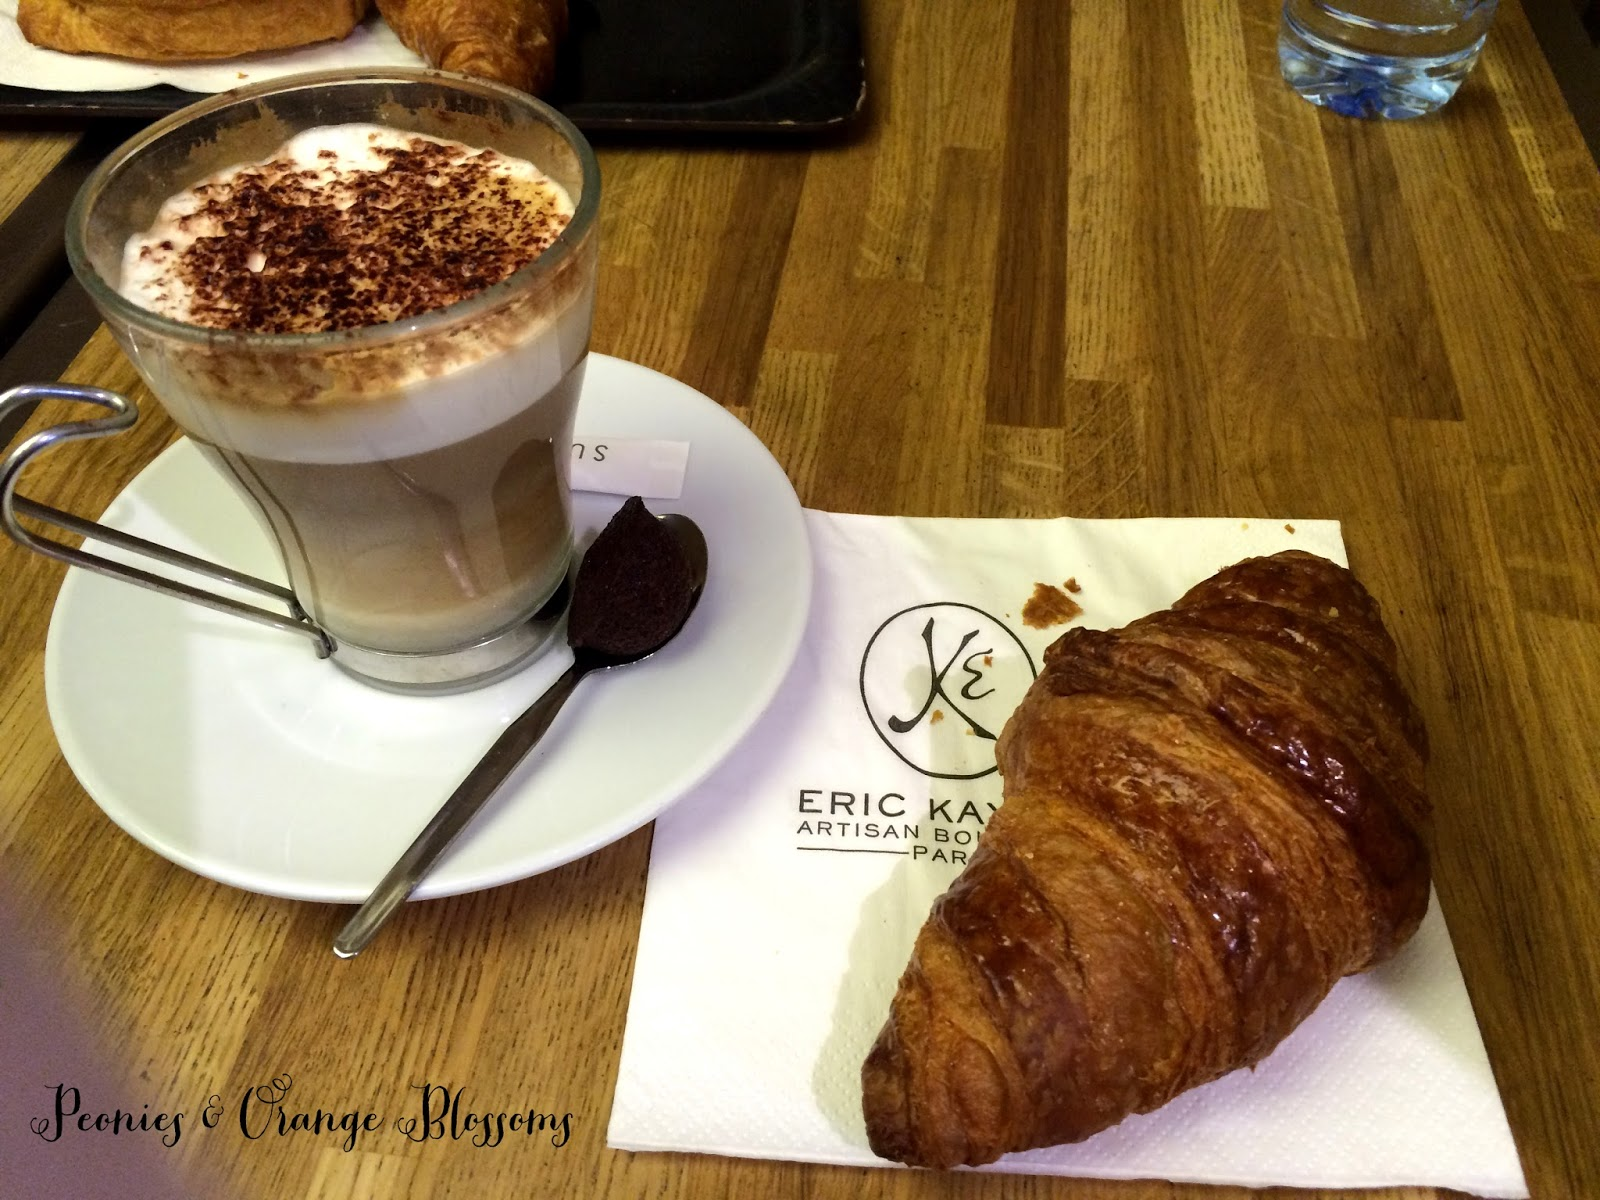 Croissant and Cappuccino from Eric Kayser